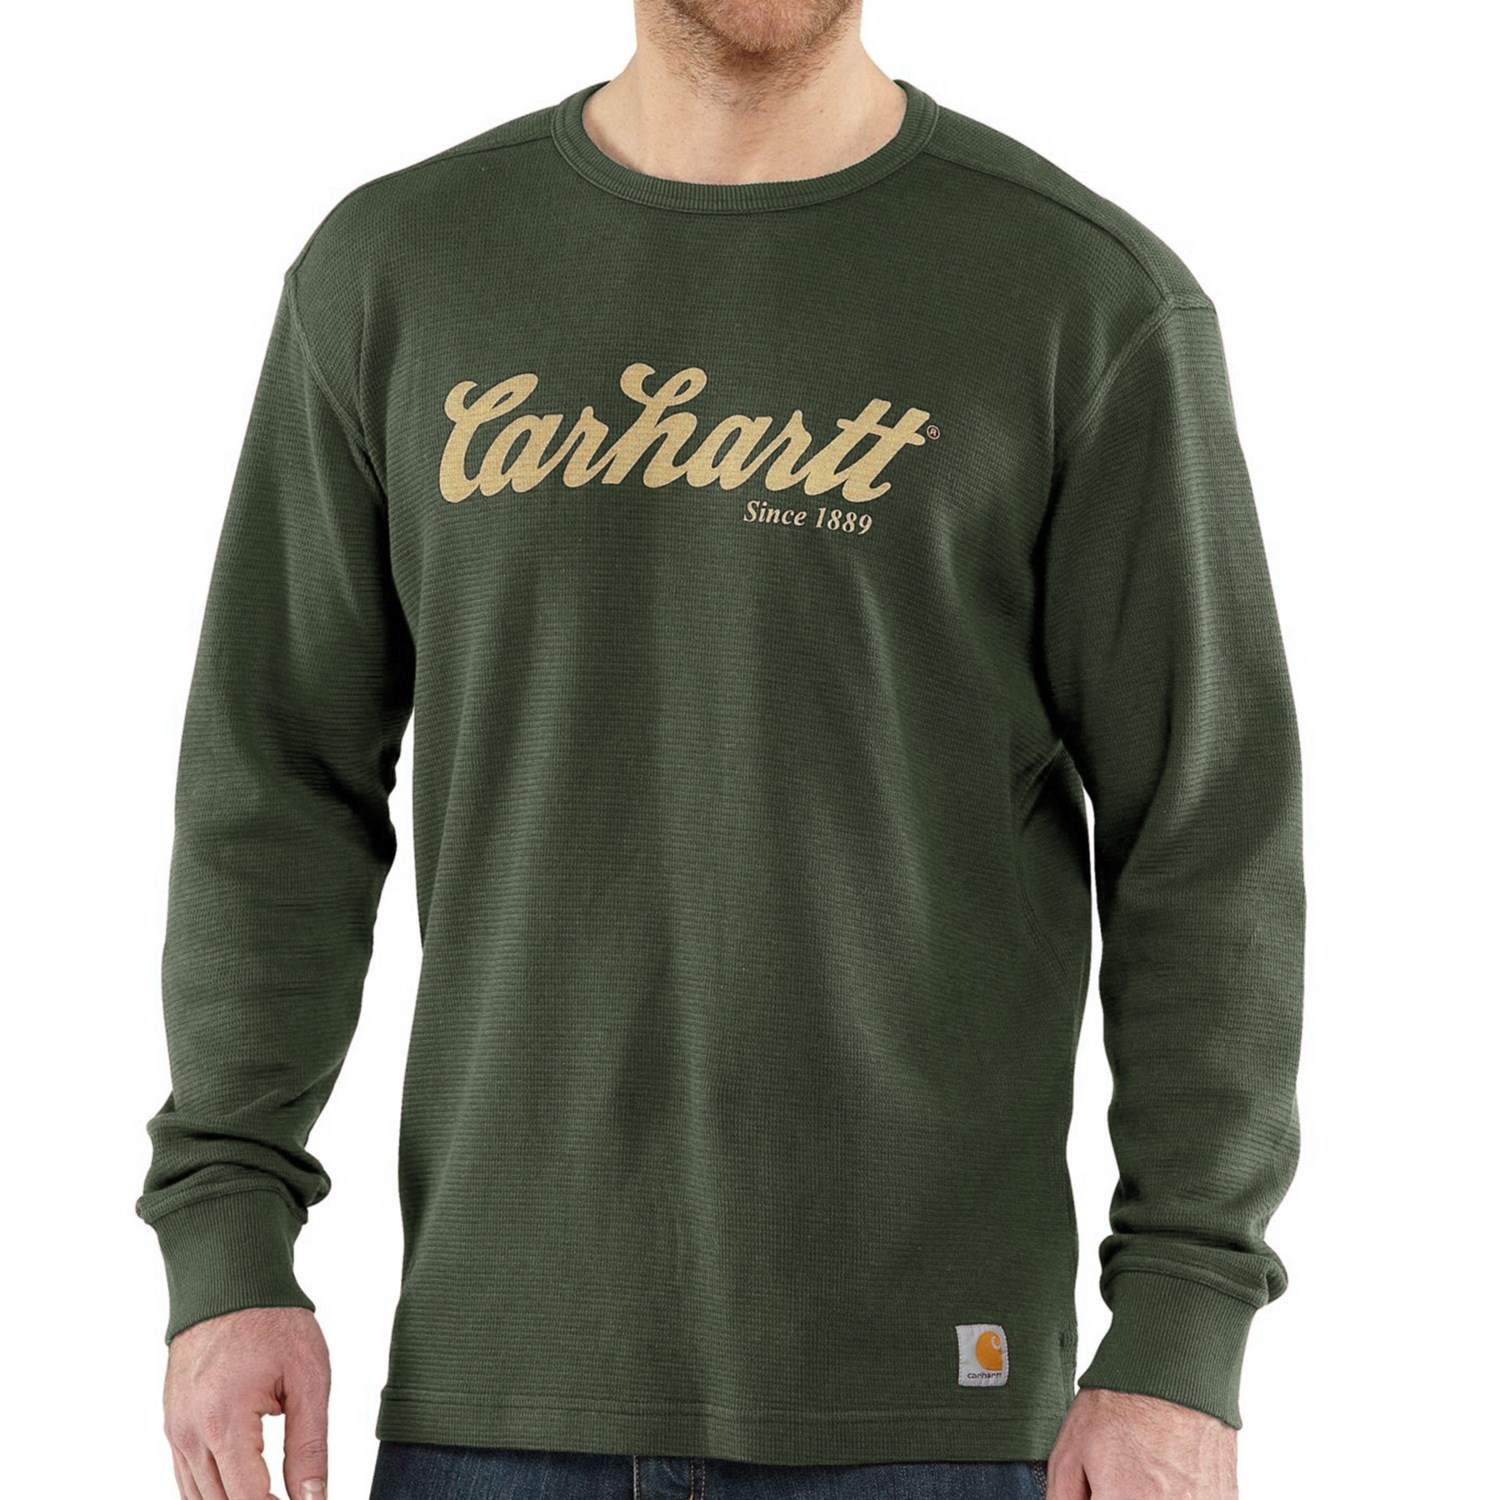 carhartt graphic t shirt for big and tall men